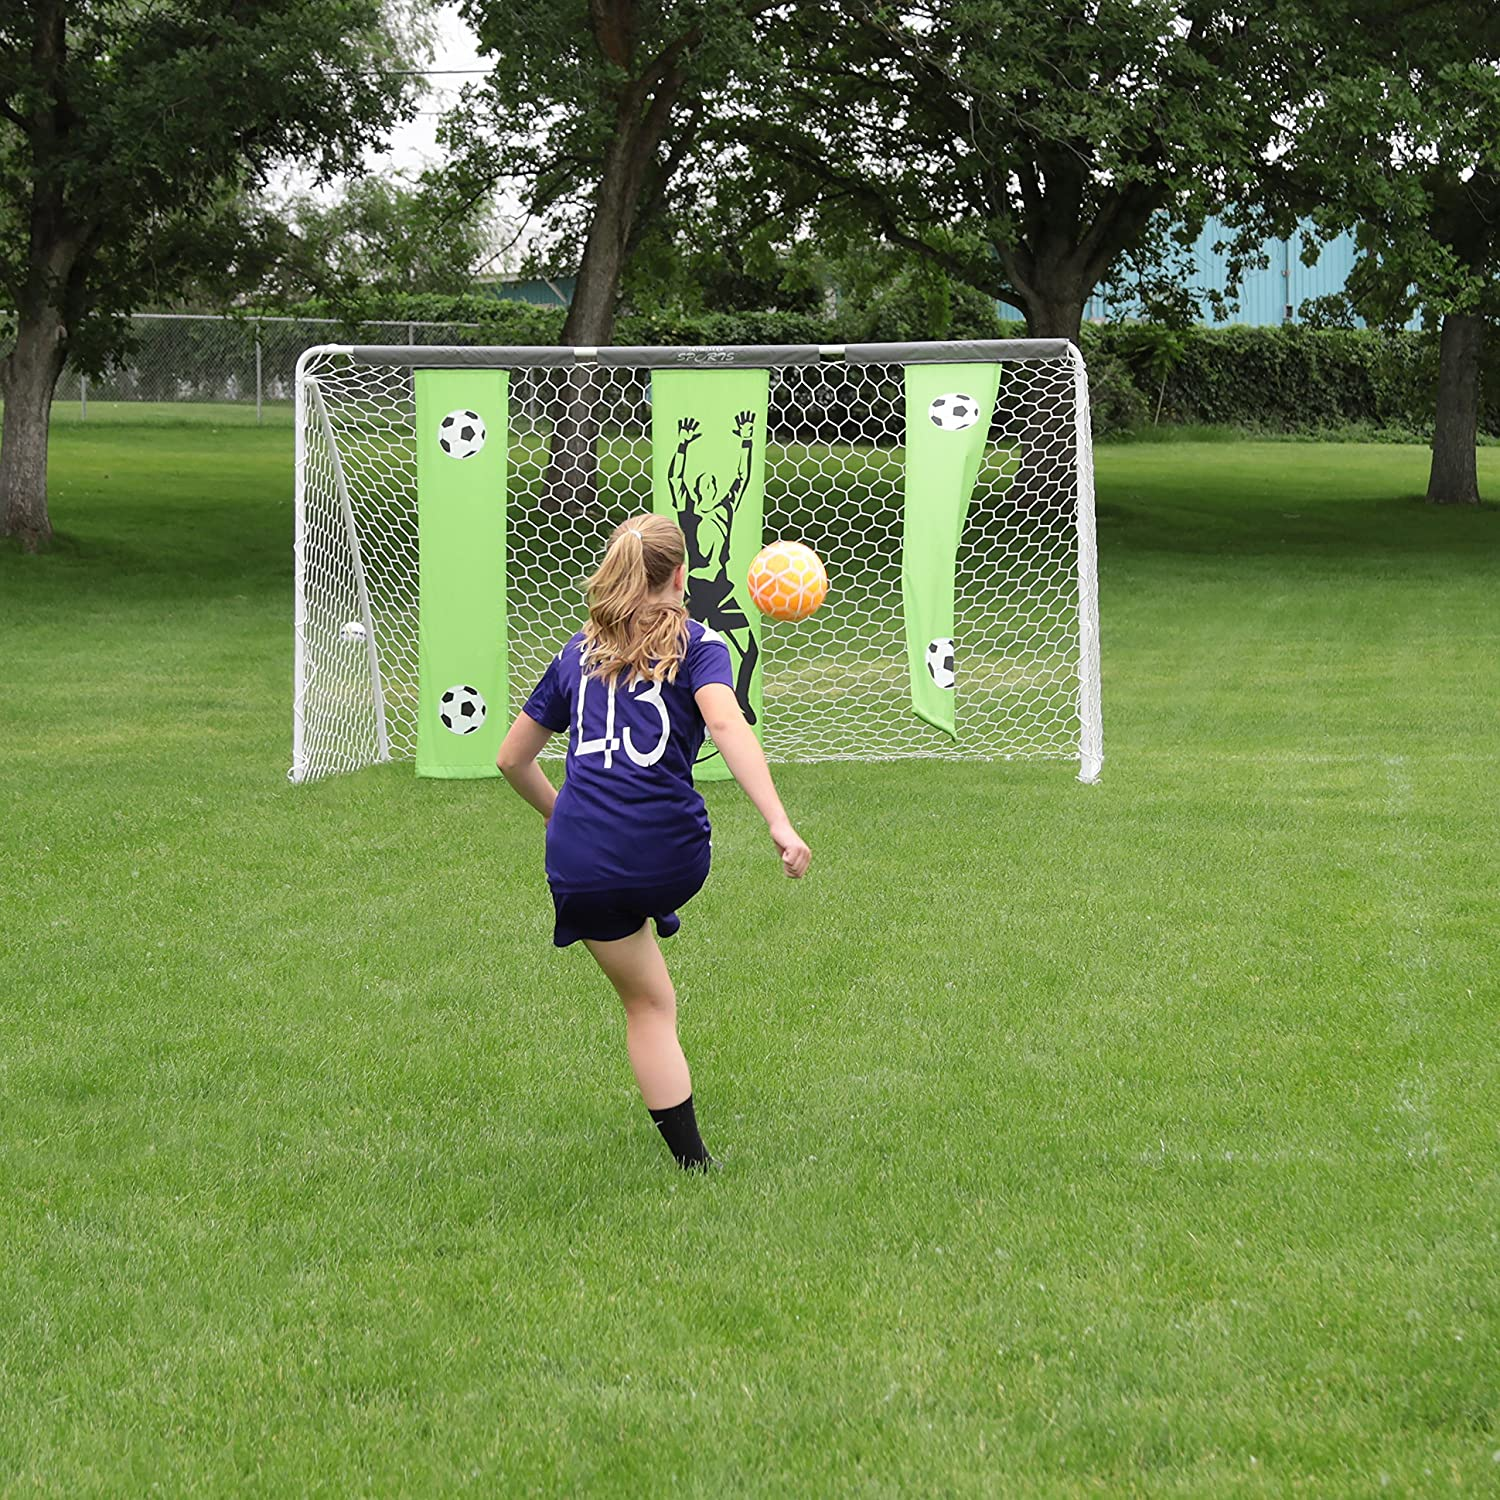 Skywalker Sports Soccer Goal with Practice Banners